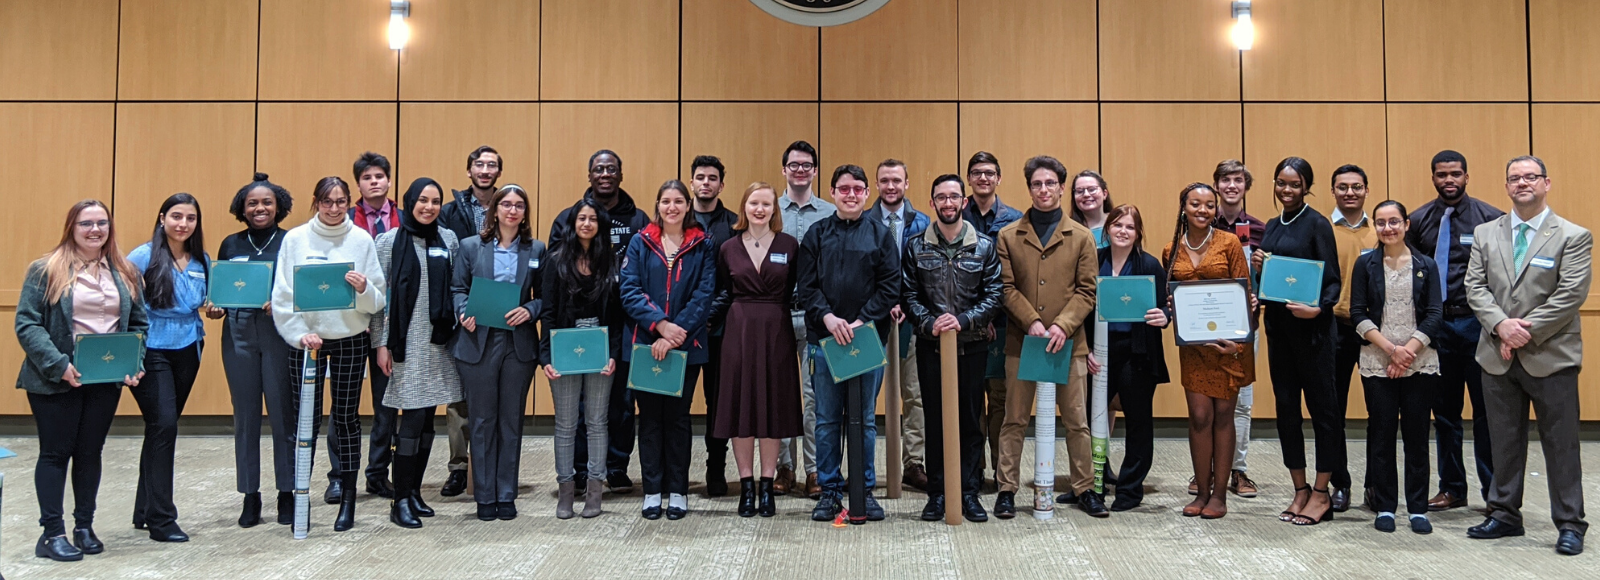 Group shot of student researchers at the 2020 symposium